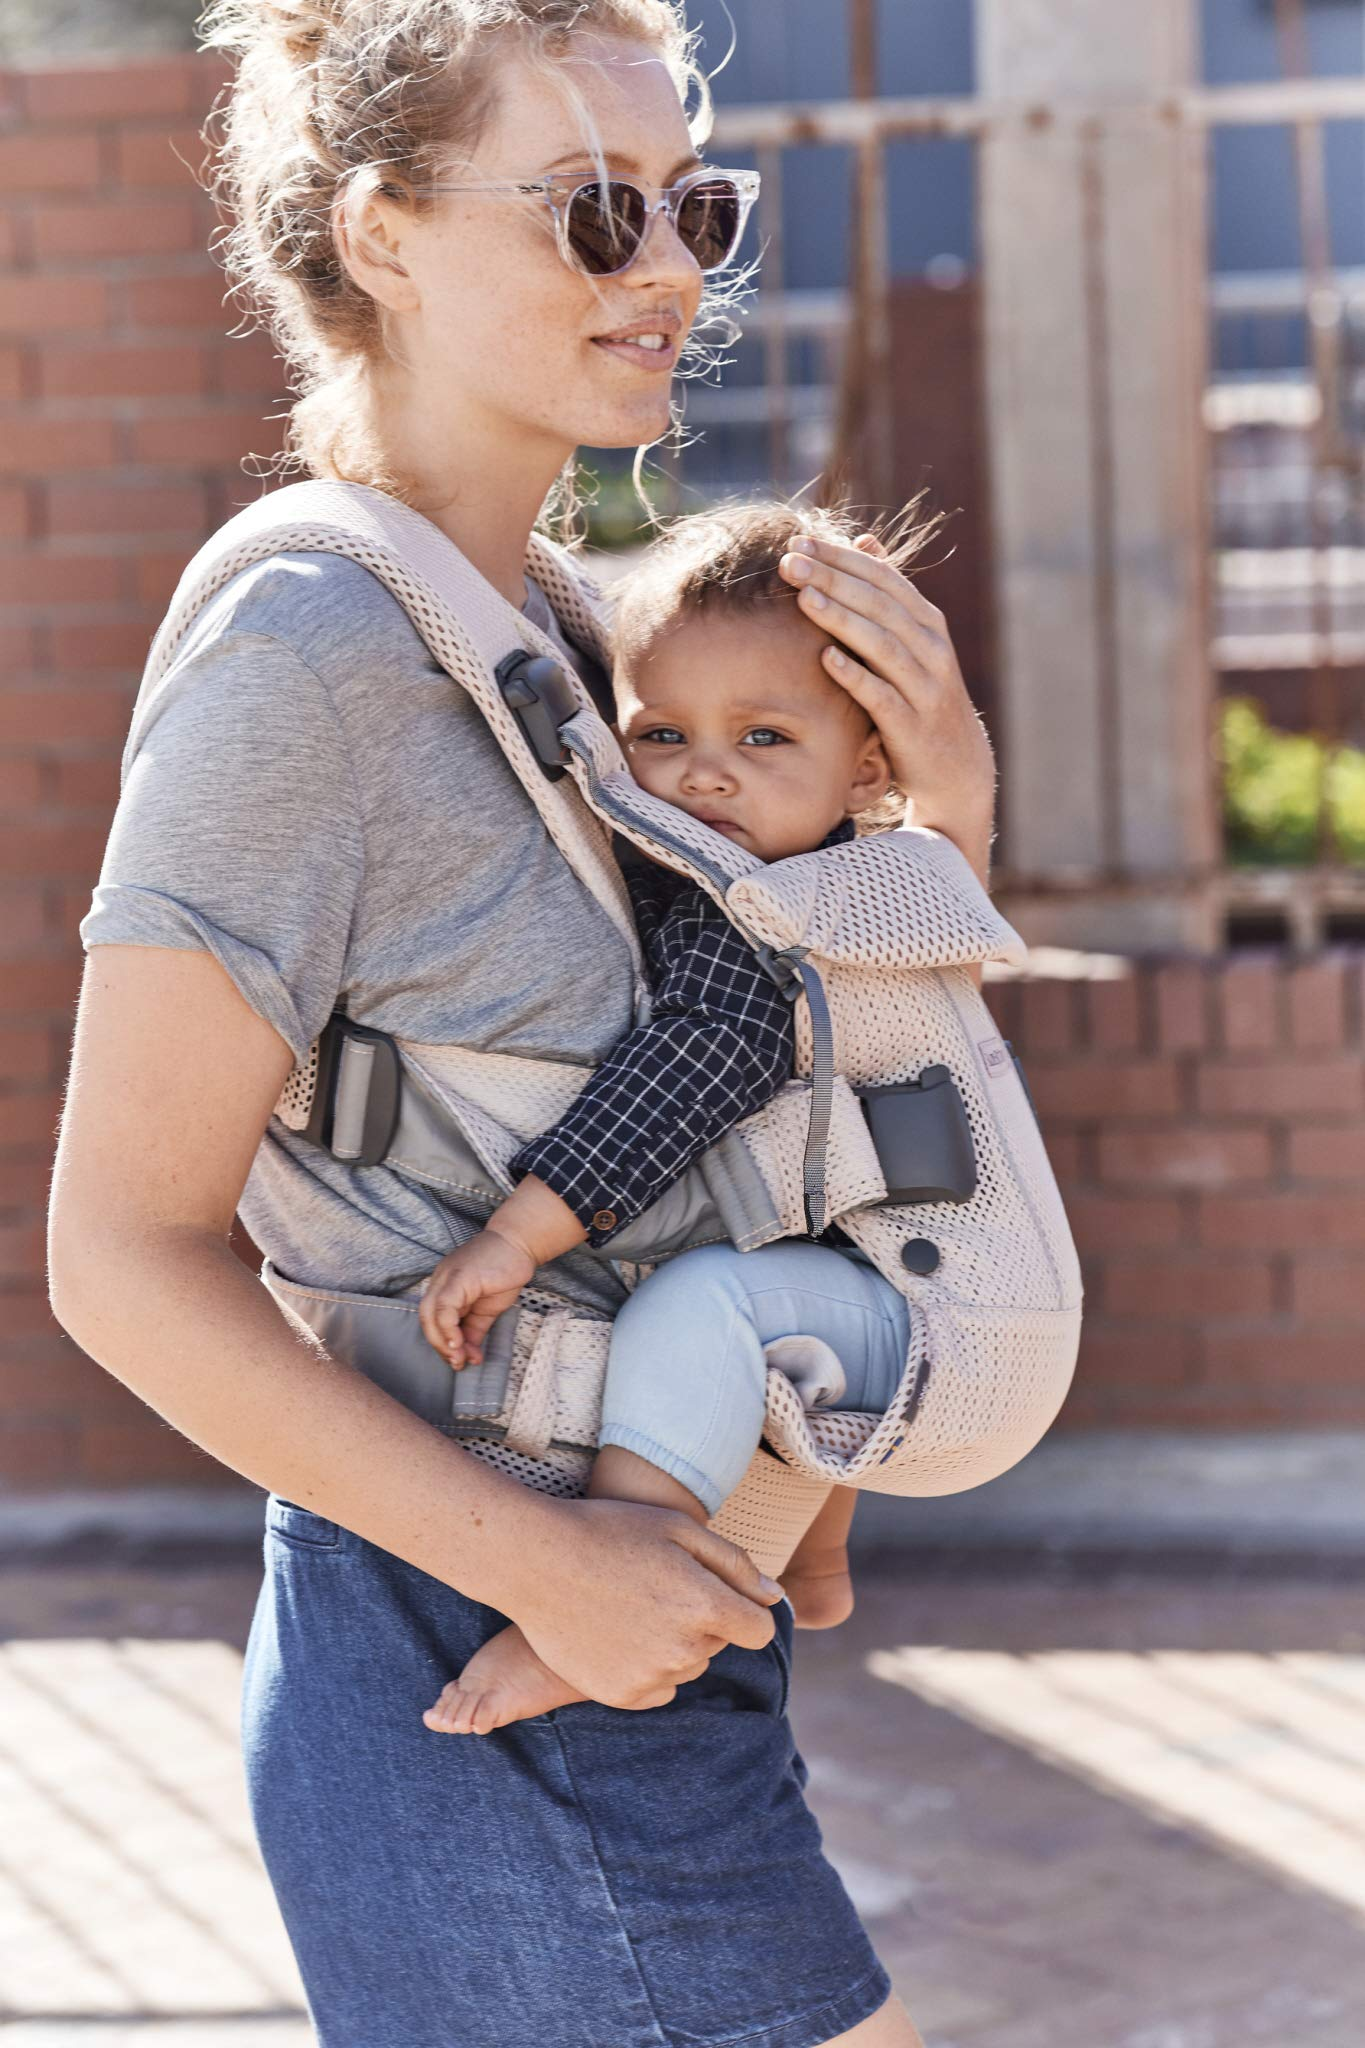 BABYBJÖRN Baby Carrier One, Cotton Mix, Black, 2018 Edition Baby Bjorn The latest version with soft and breathable mesh that dries quickly Ergonomic baby carrier with excellent support 4 carrying positions: facing in (two height positions), facing out or on your back 2